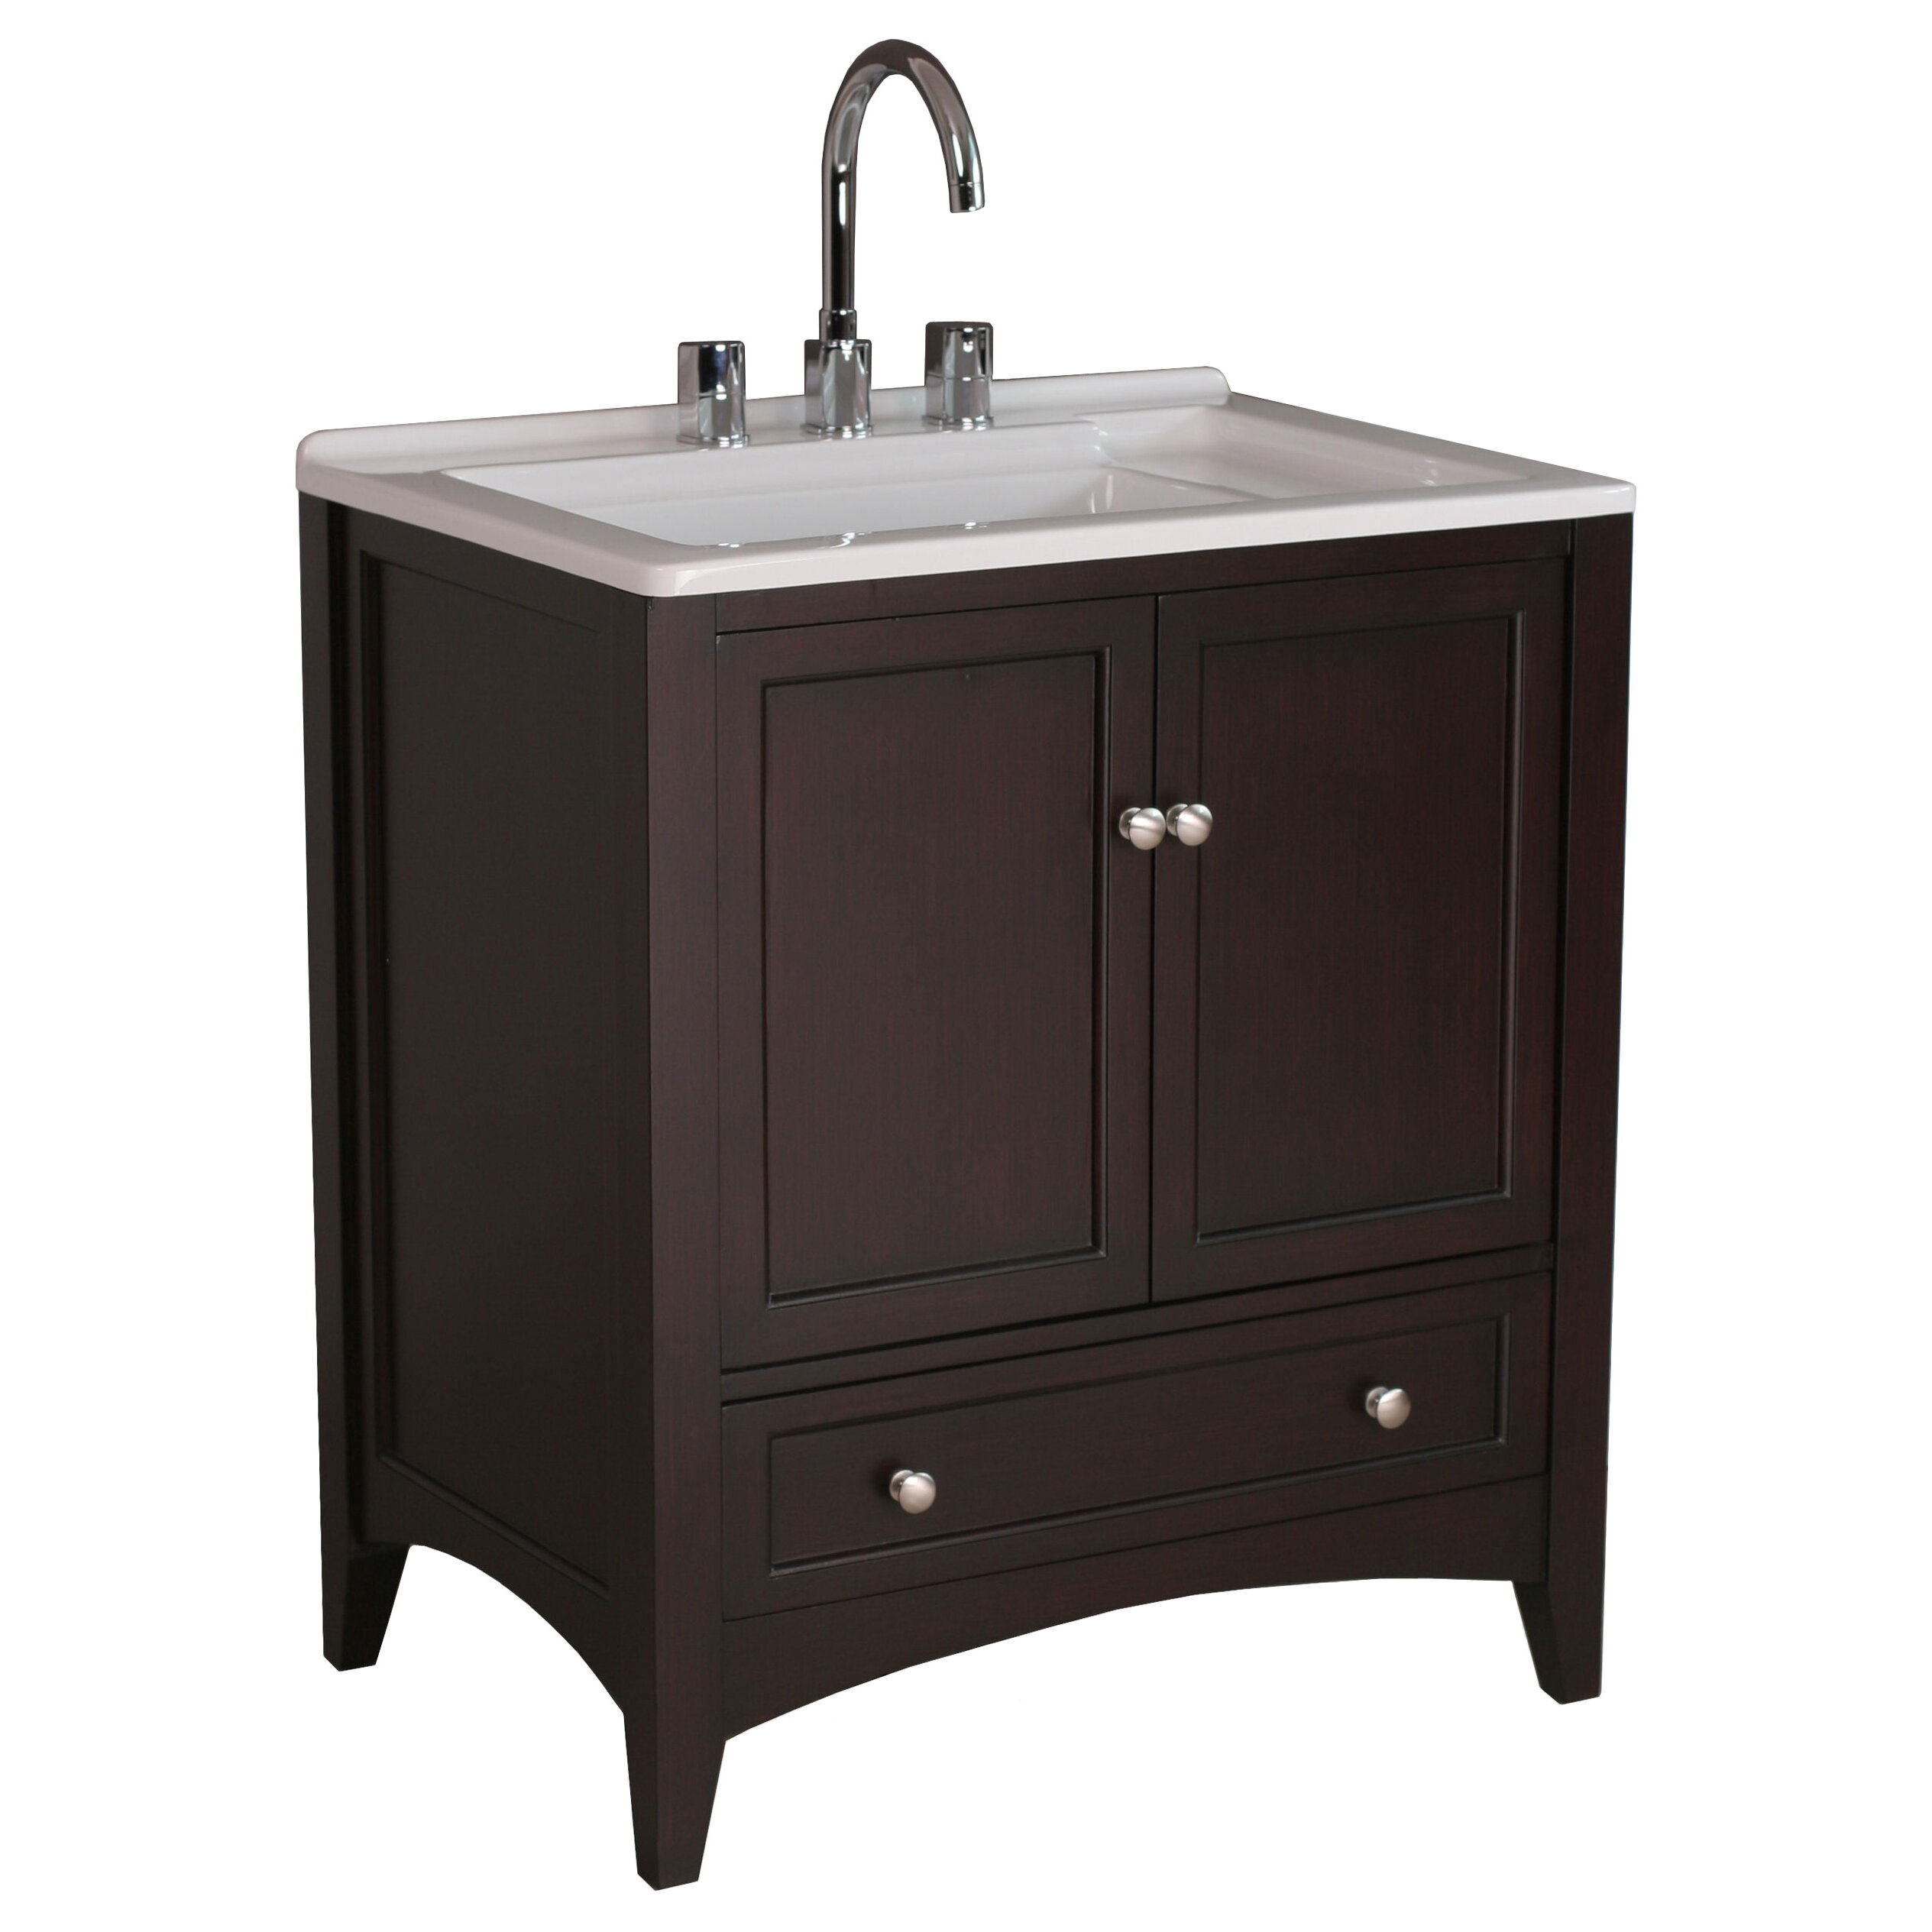 Dcor Design Savoy 31 Single Bathroom Vanity Set Reviews